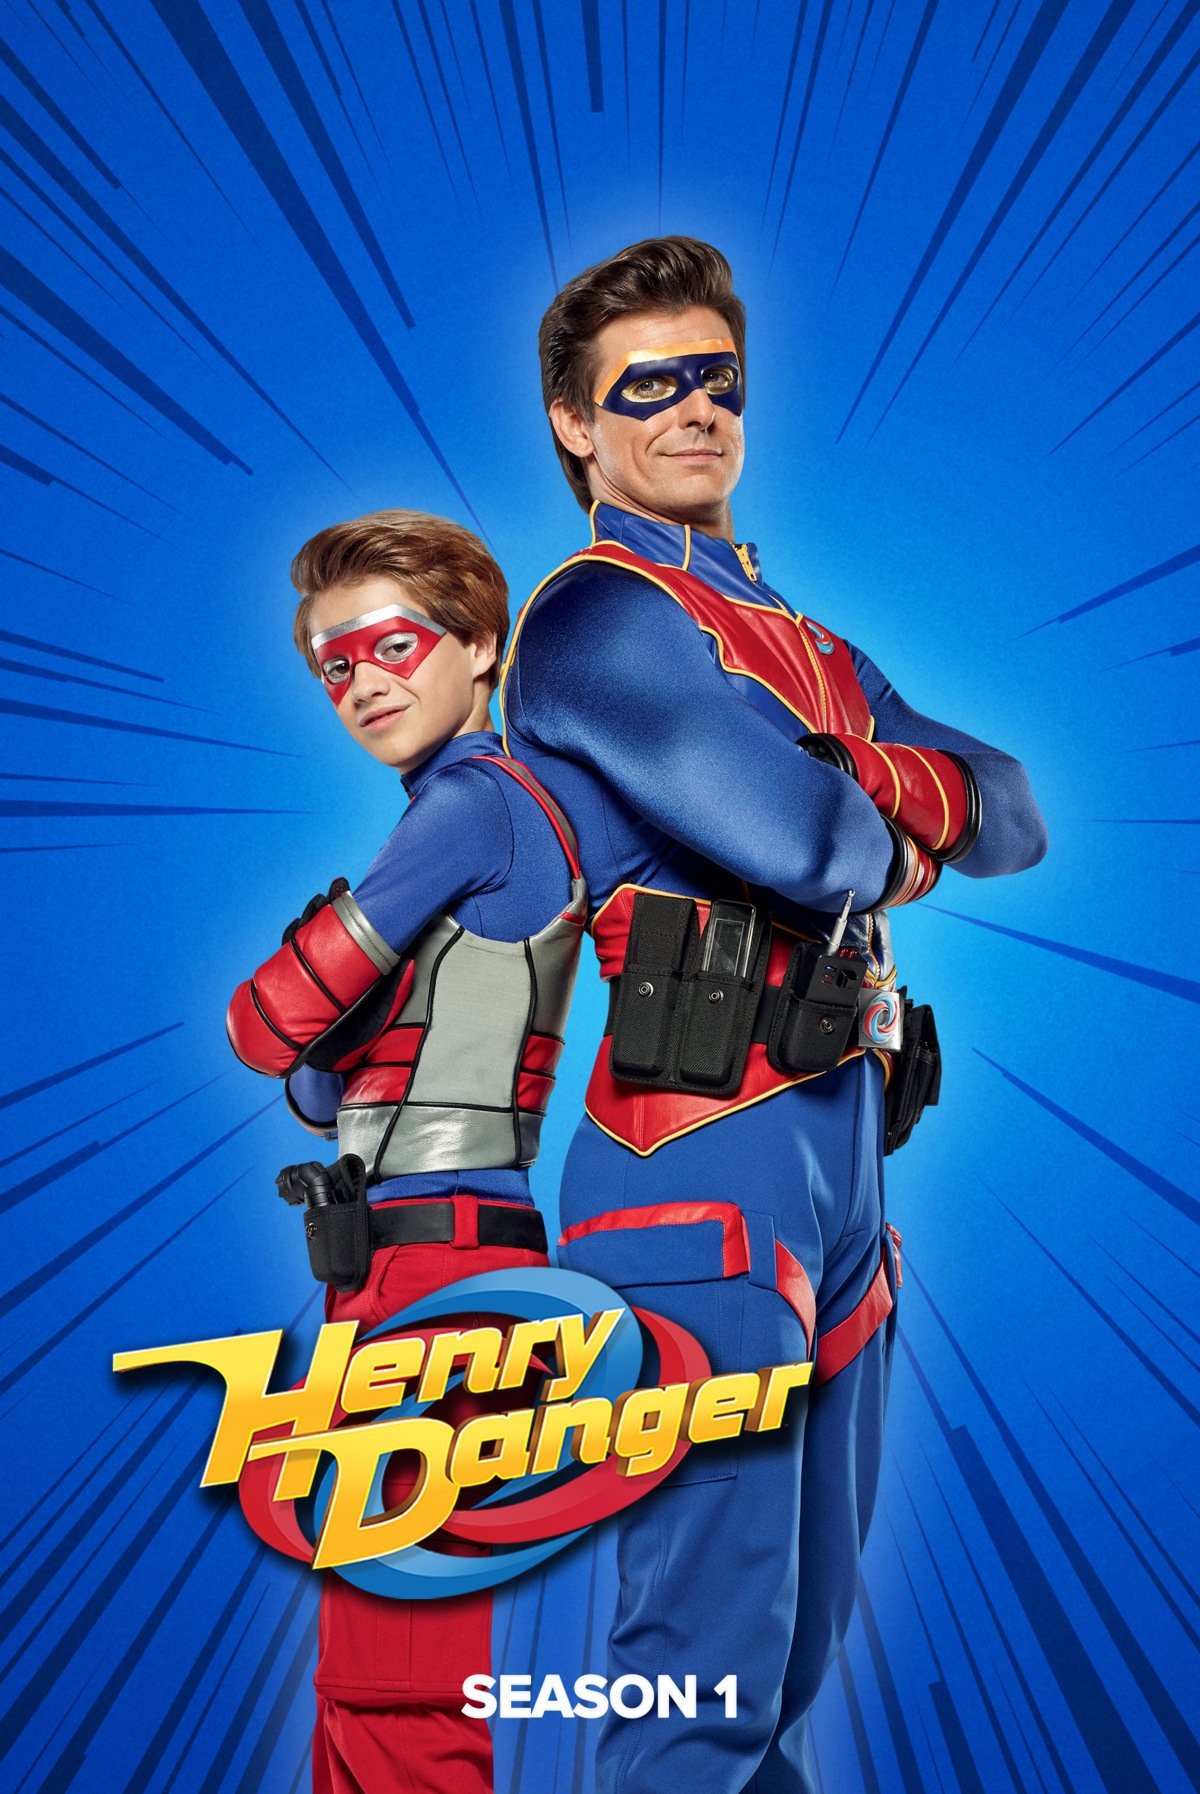 Now Player - On Demand > Henry Danger S1